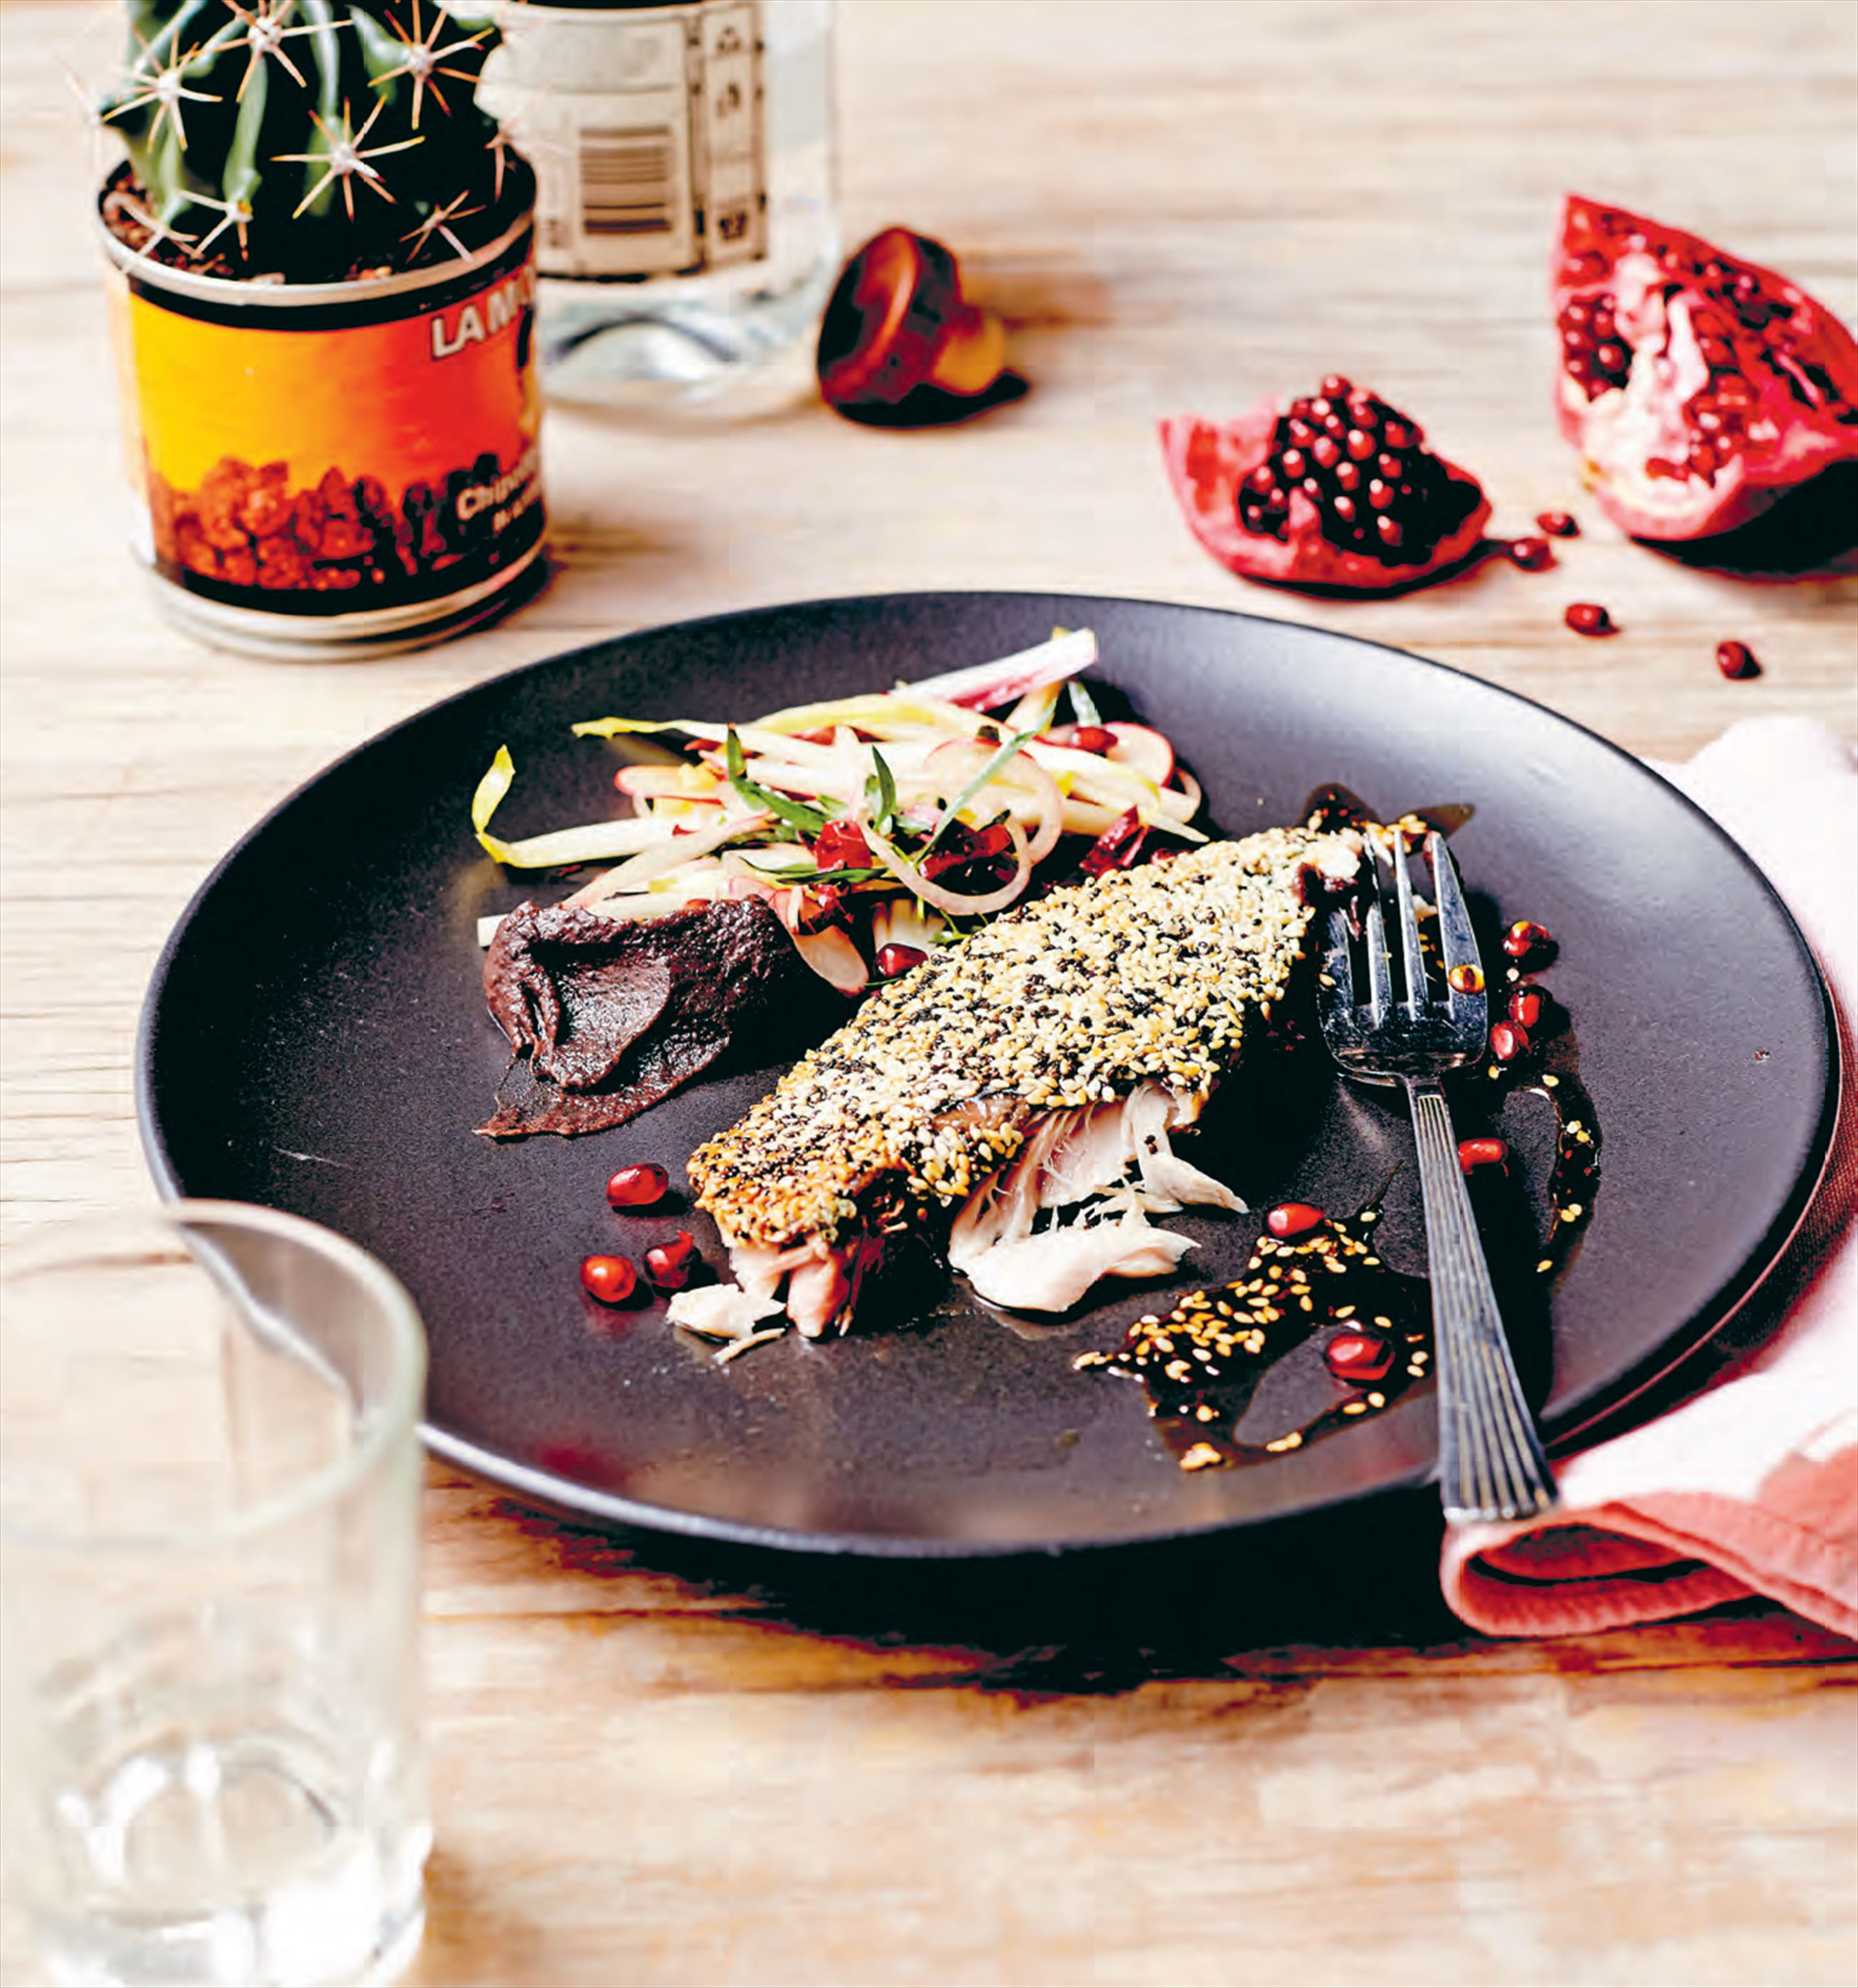 Chia-crusted mackerel with pomegranate mojo